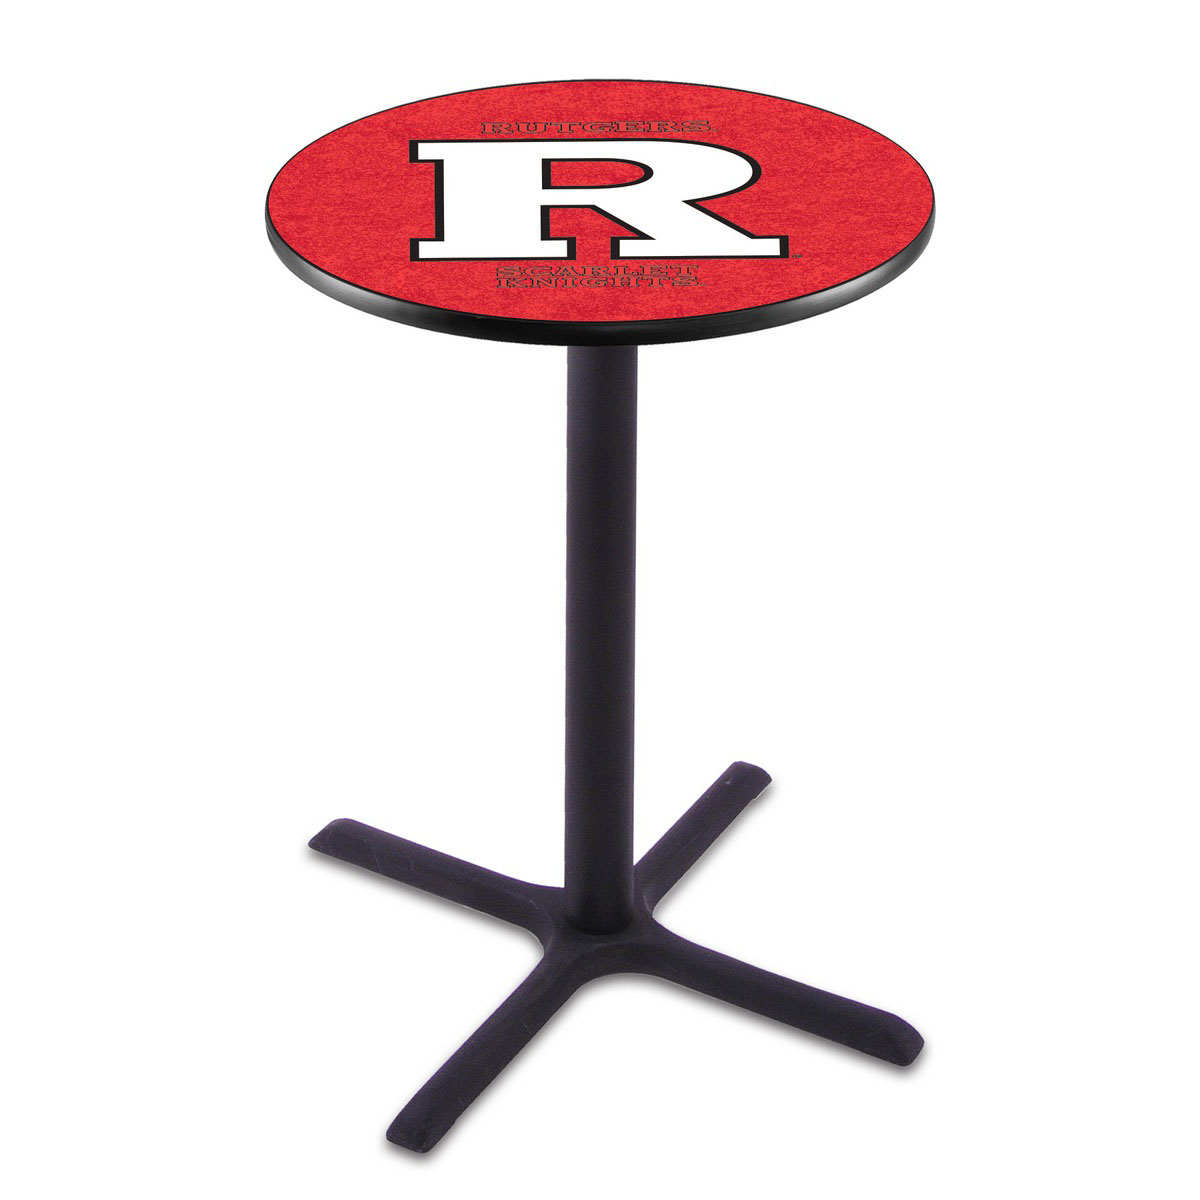 Design Rutgers Wrinkle Pub Table Product Photo